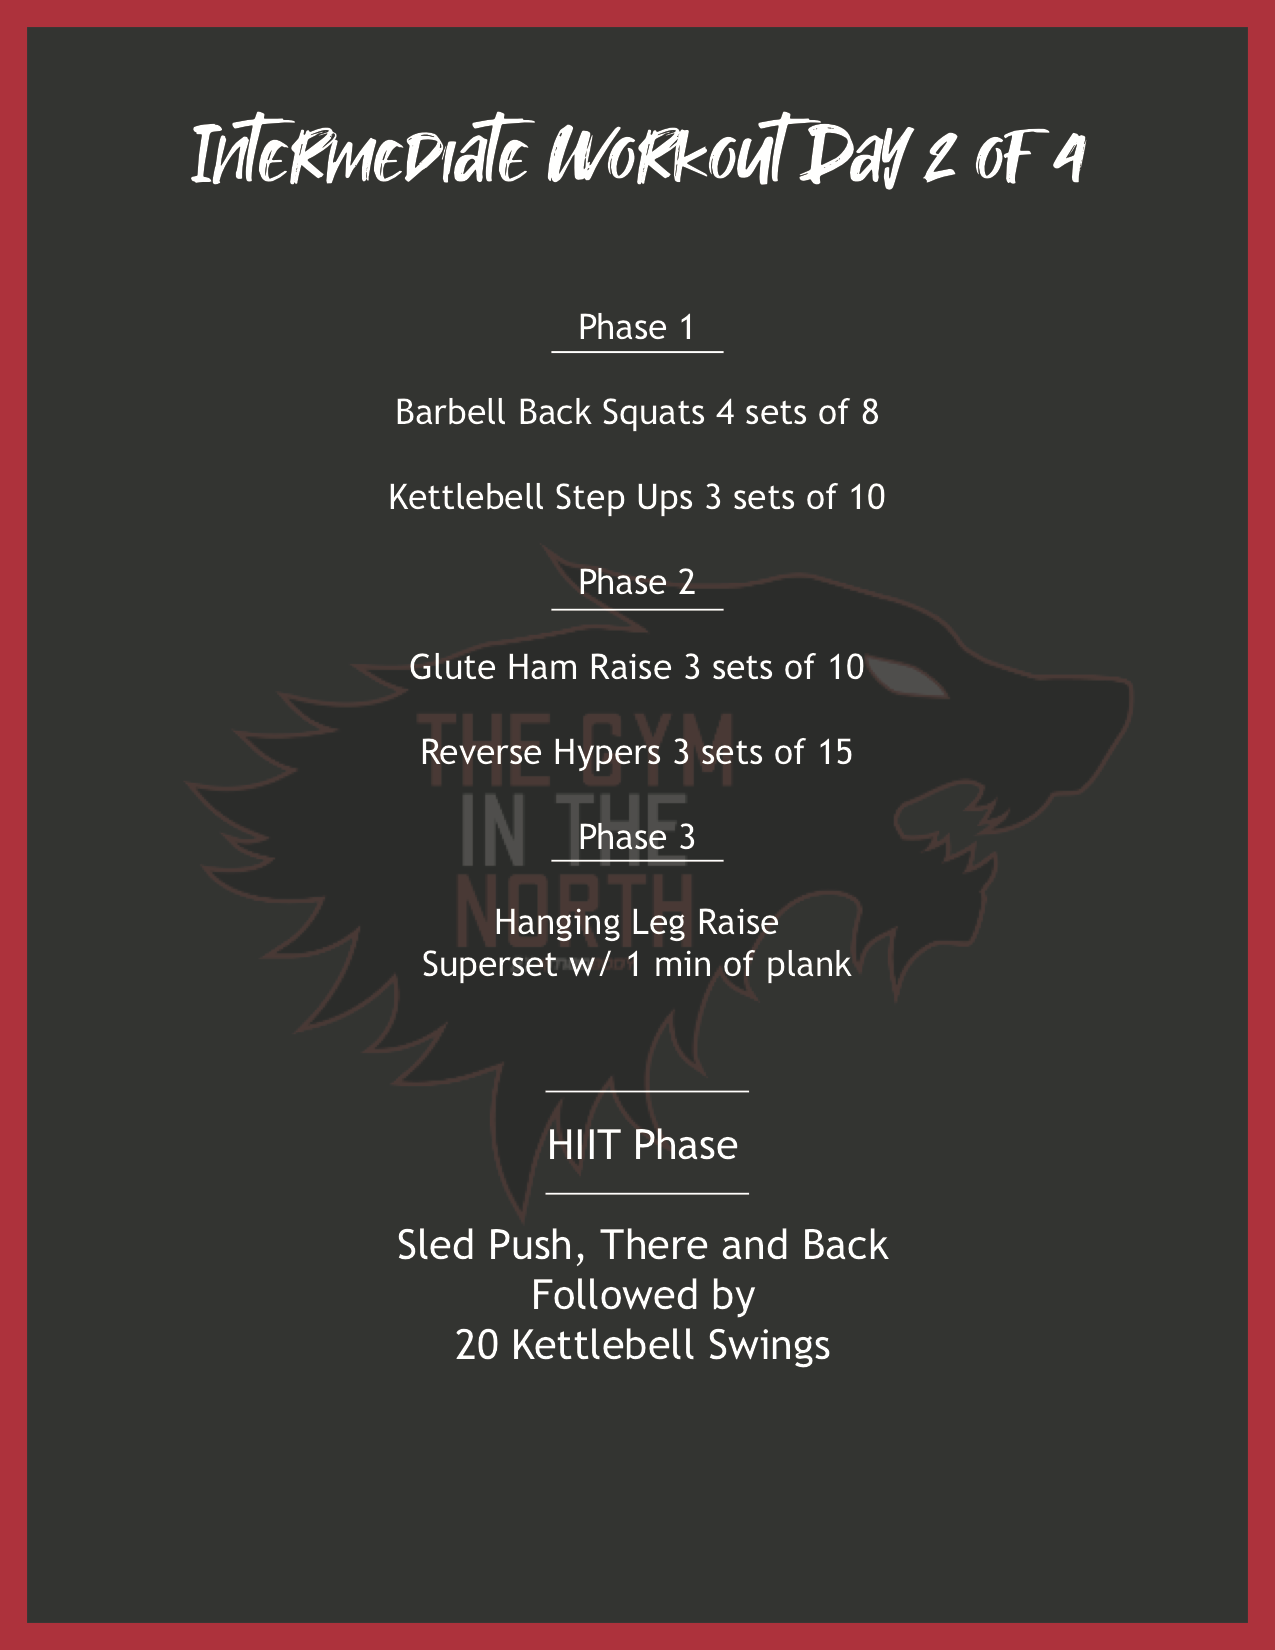 Intermediate-workout-day-2-of-4-1.png